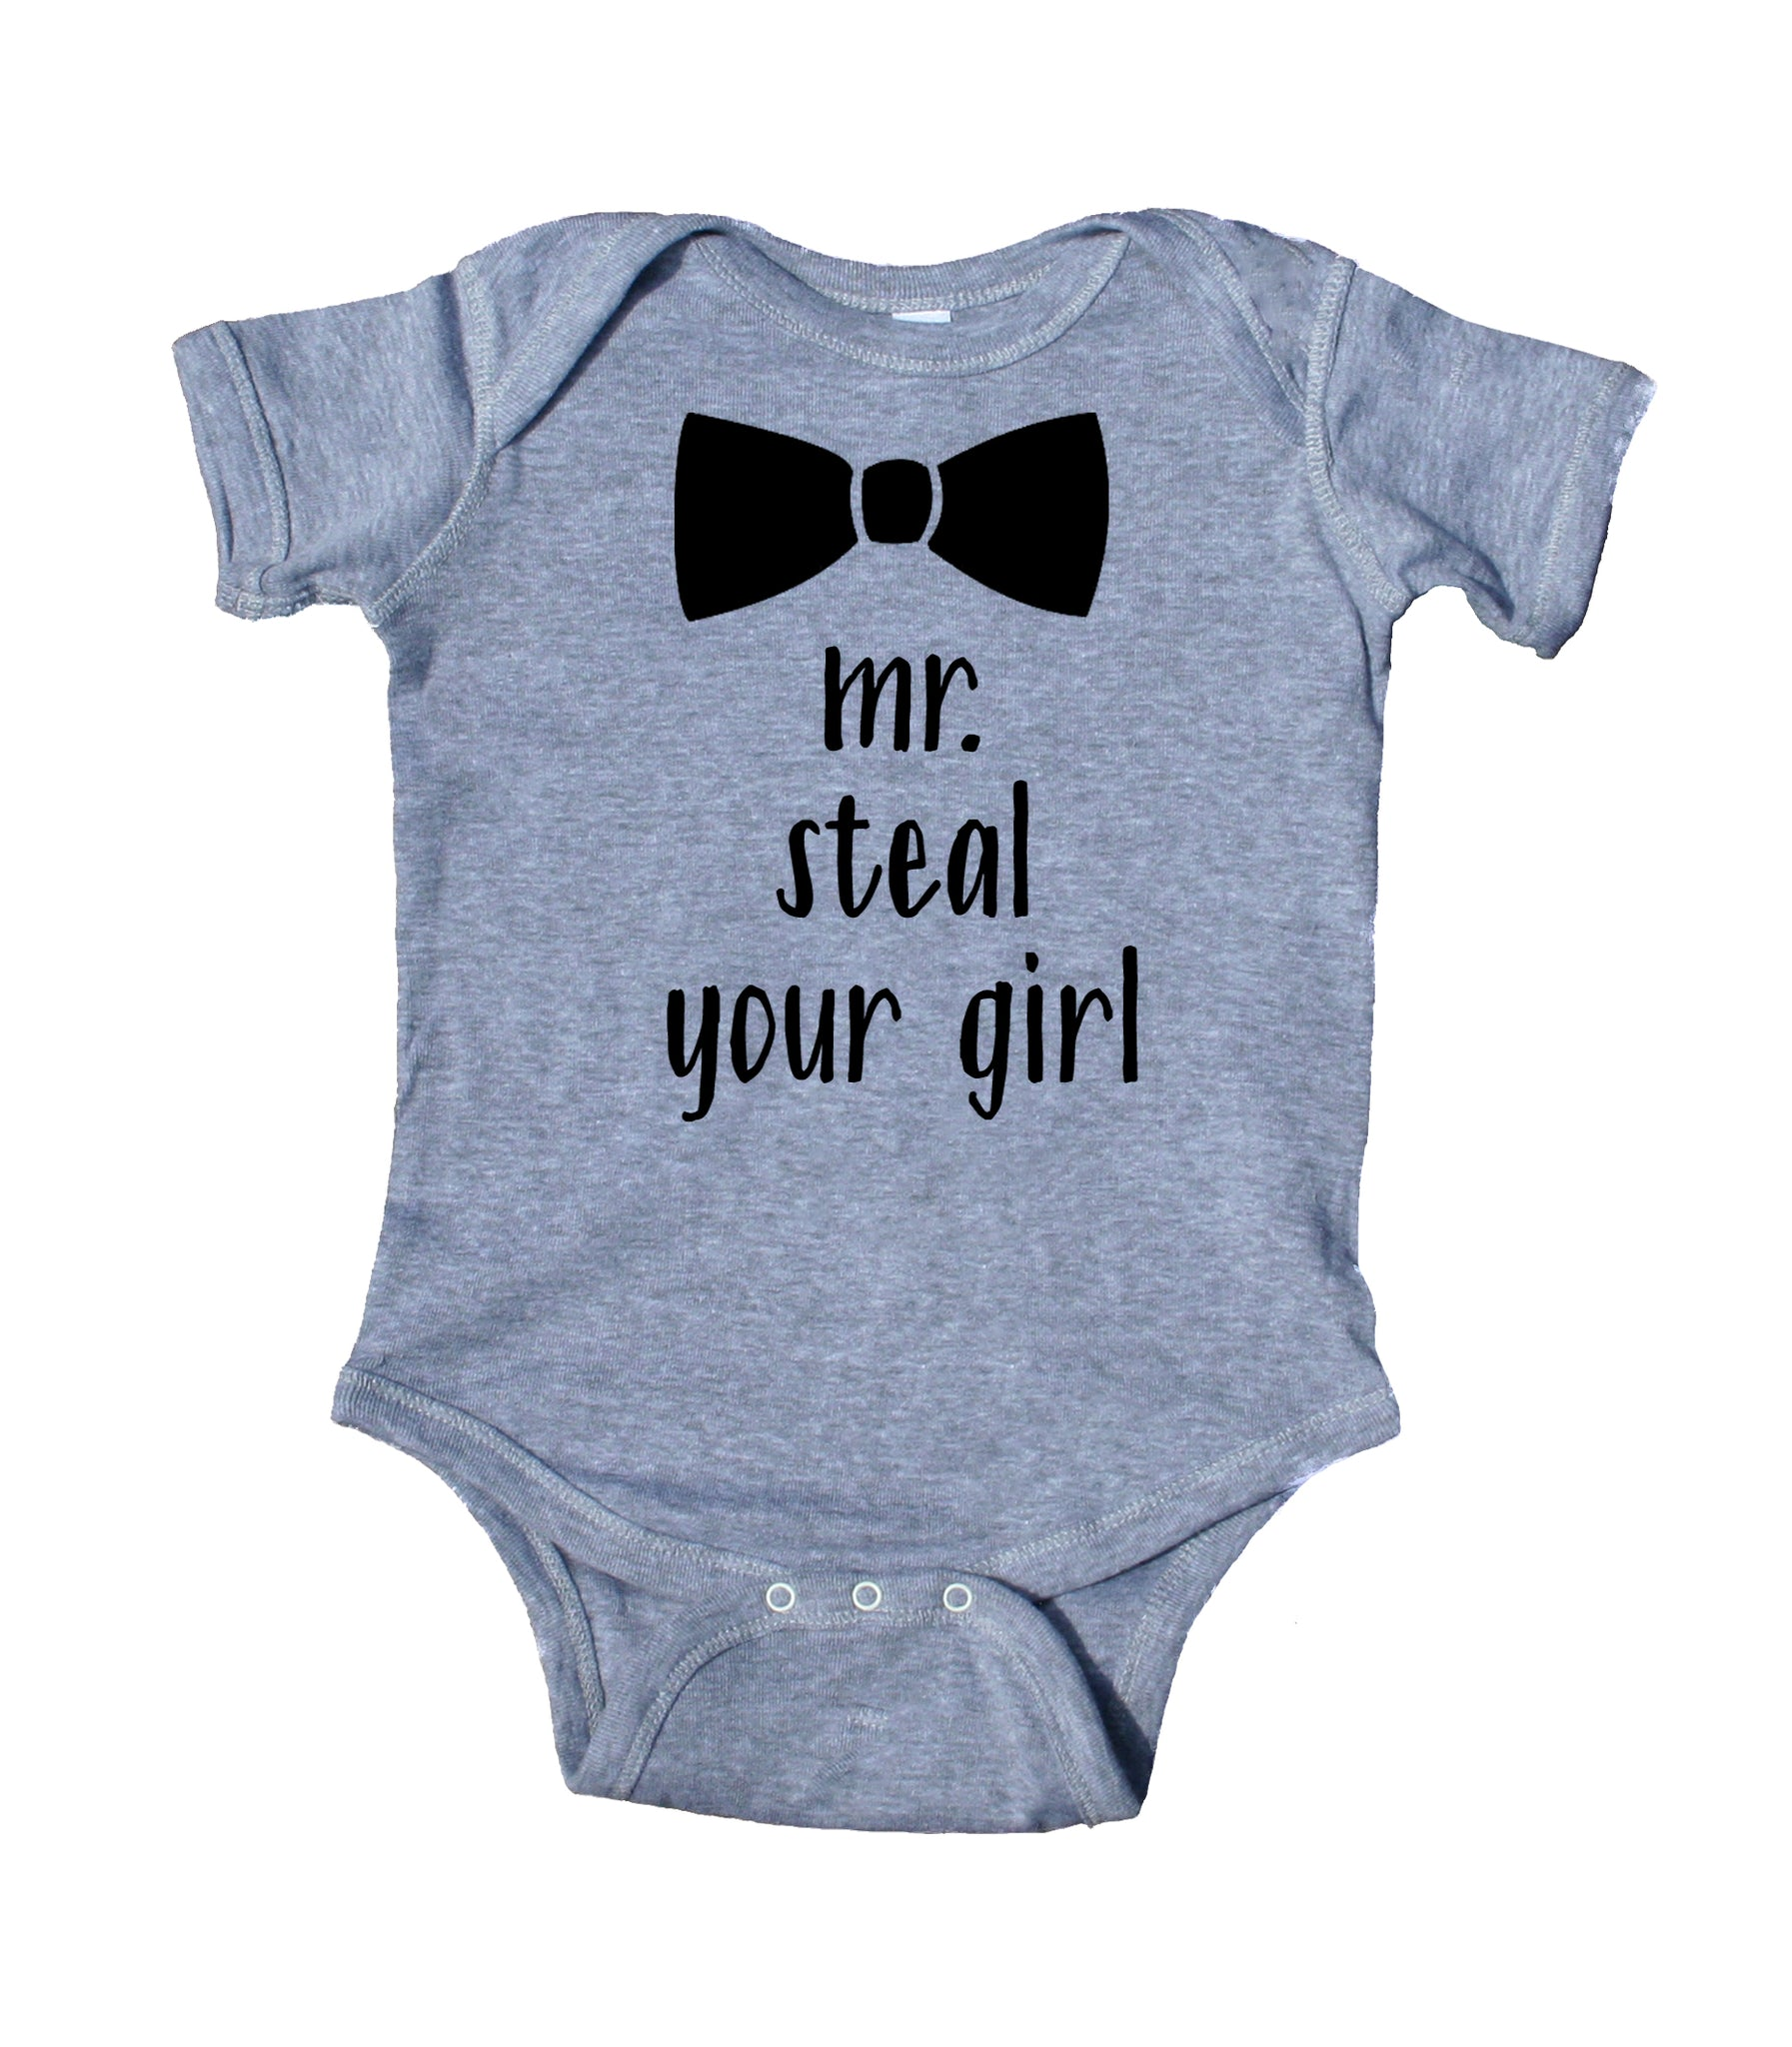 5609b860b14f ... Mr Steal Your Girl Baby Bodysuit Funny Cute Boy Newborn Gift Baby  Shower Infant Clothing ...